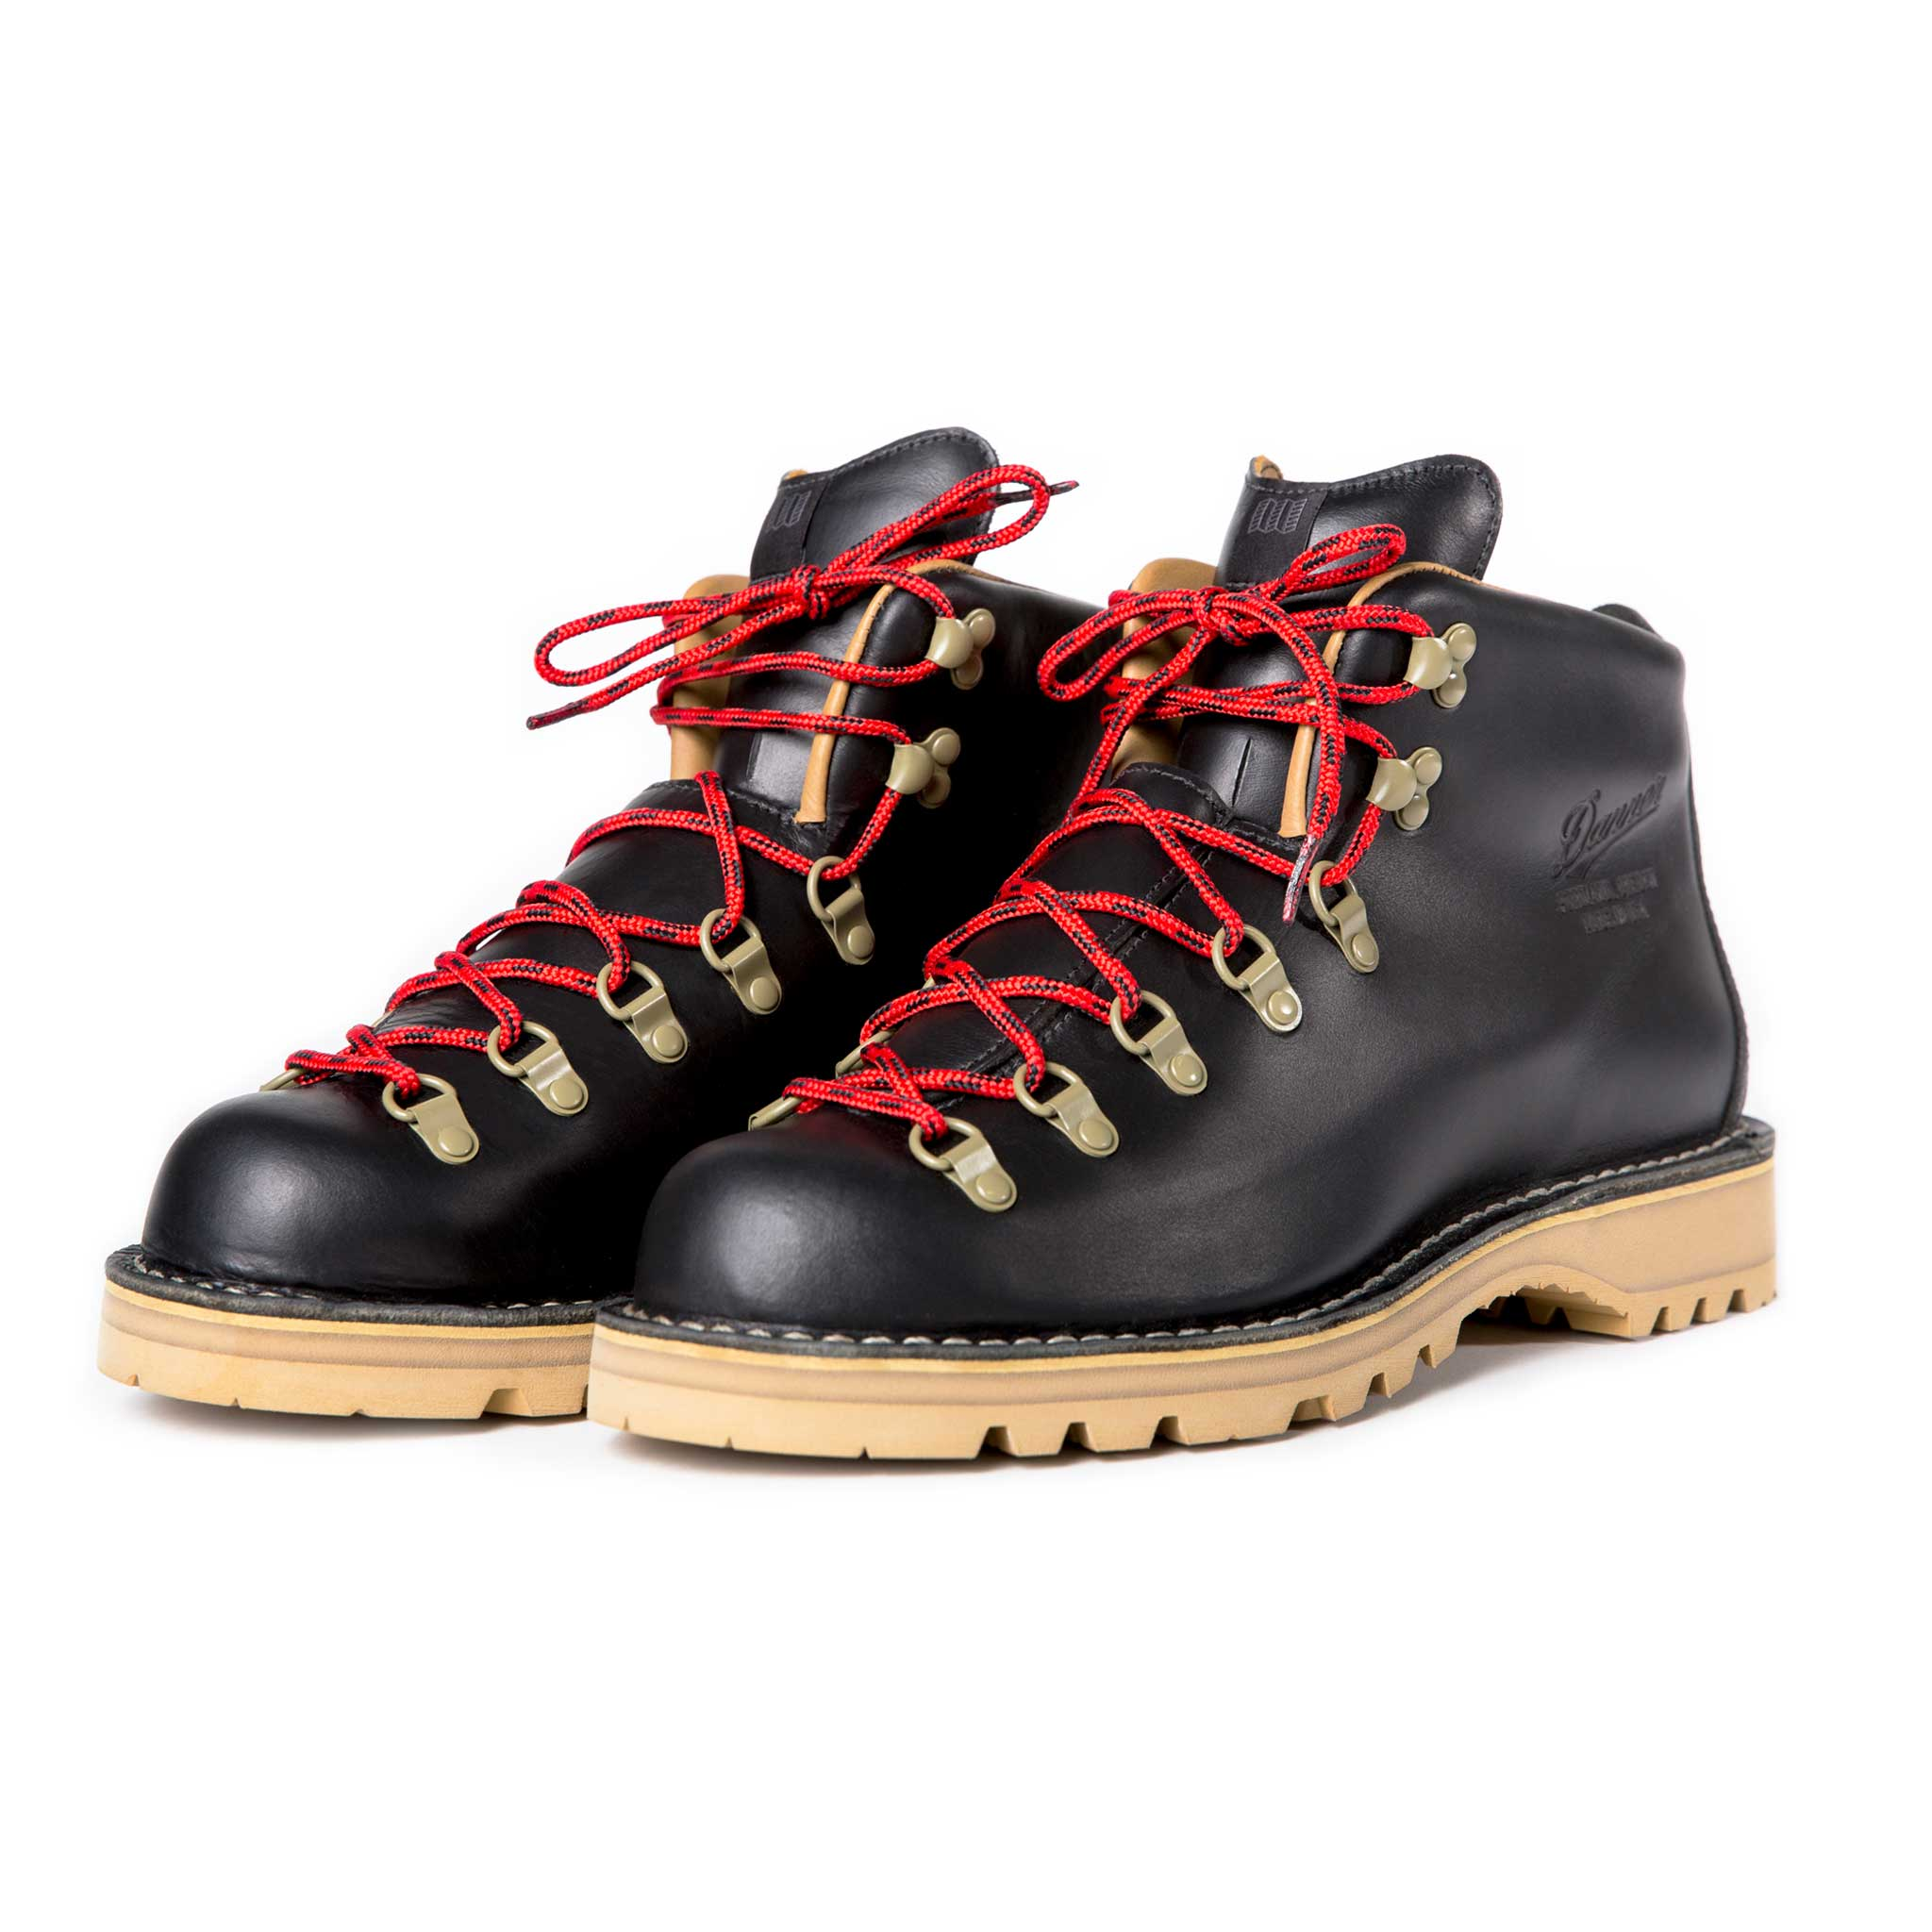 289120b8e2d Topo Designs x Danner Mountain Light Boot | Made in USA